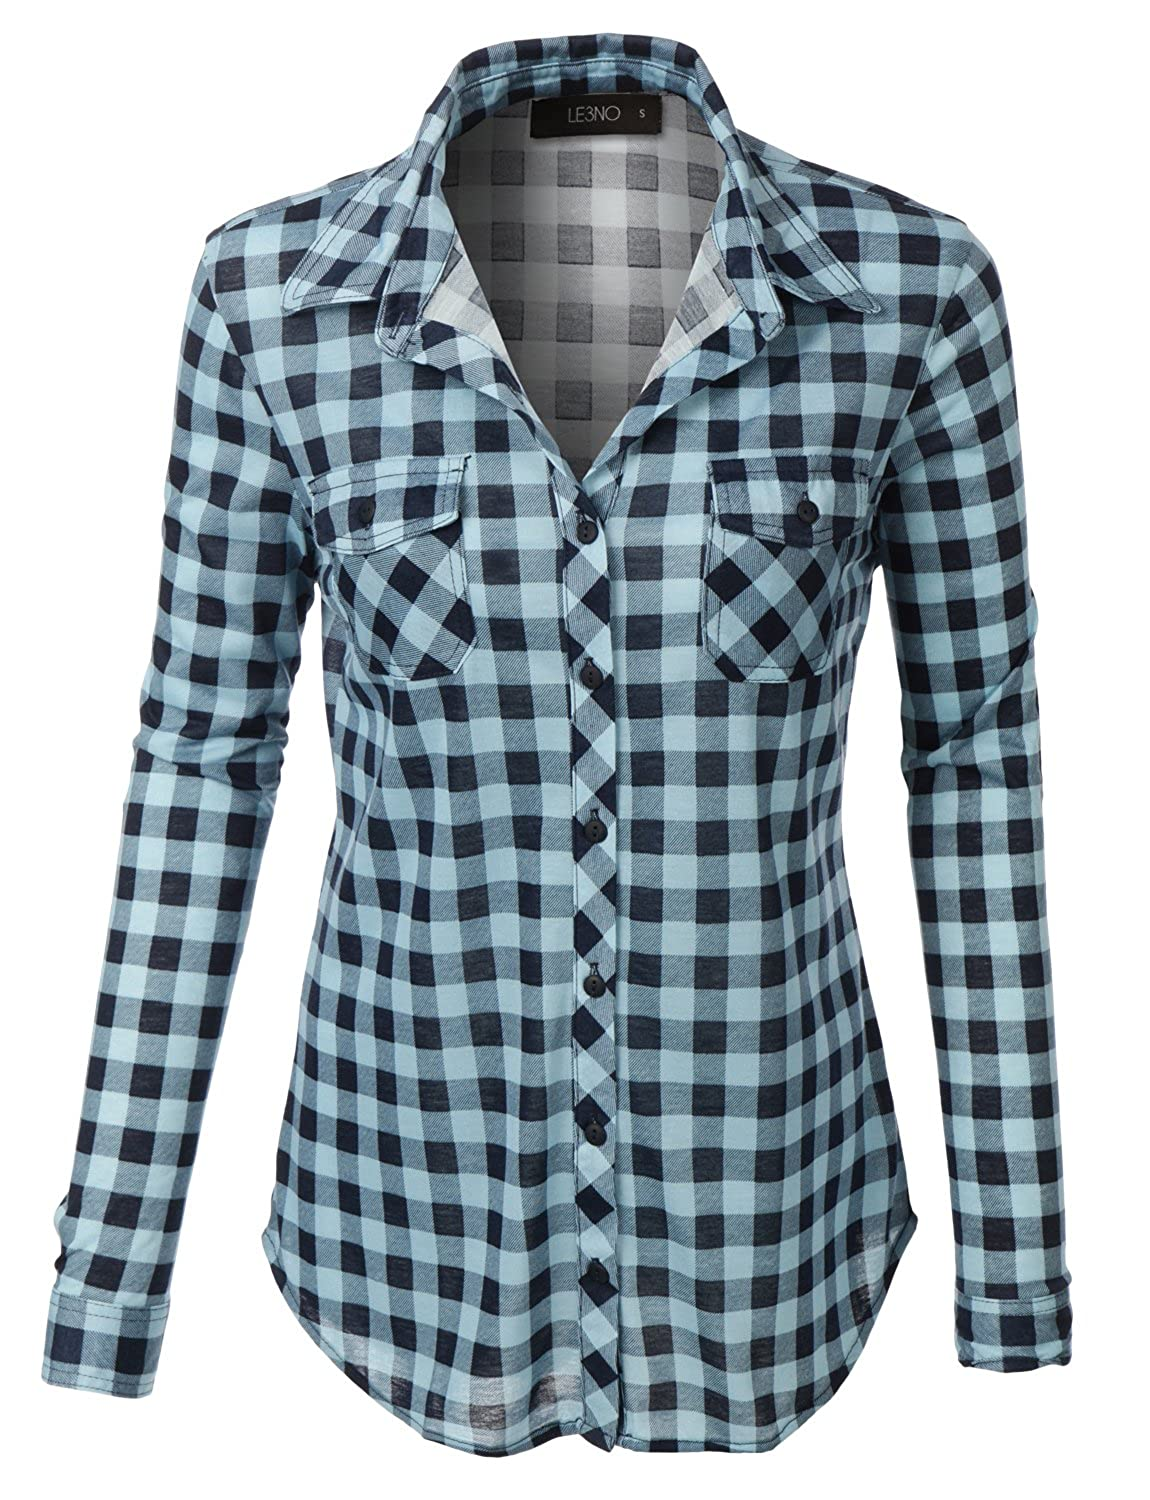 1ba2dc48 LE3NO Womens Lightweight Plaid Button Down Shirt with Roll Up Sleeves:  Amazon.co.uk: Clothing